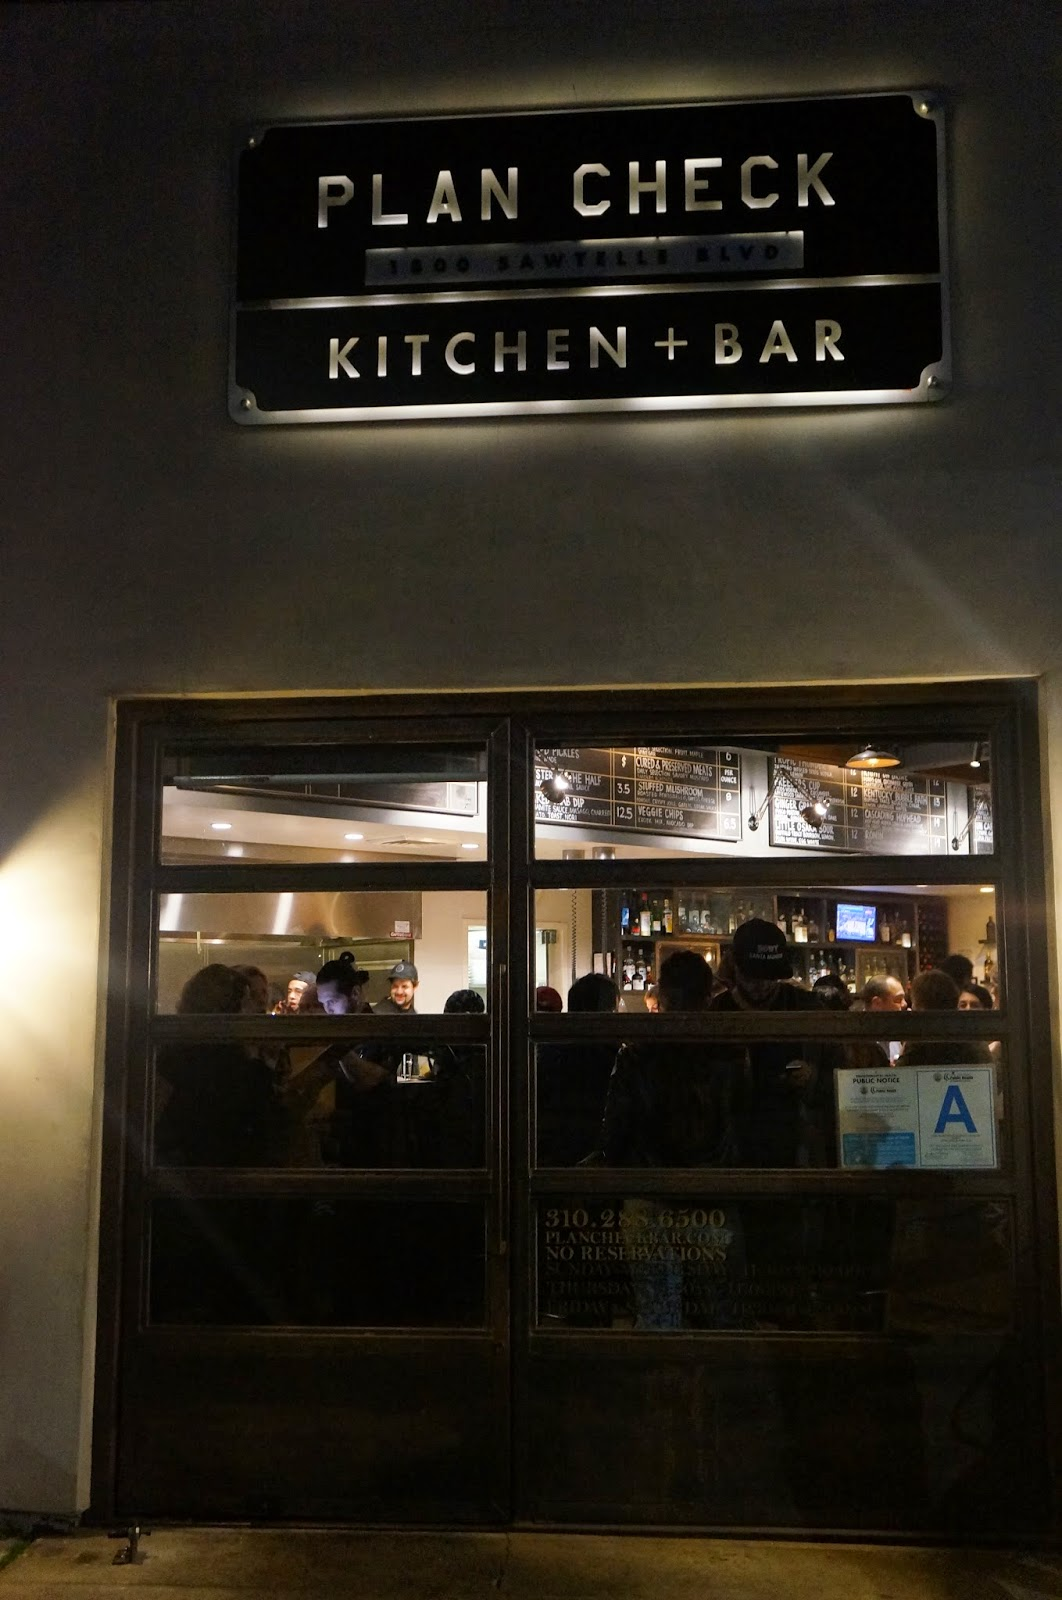 plan check kitchen bar sawtelle los angeles ca - Plan Check Kitchen